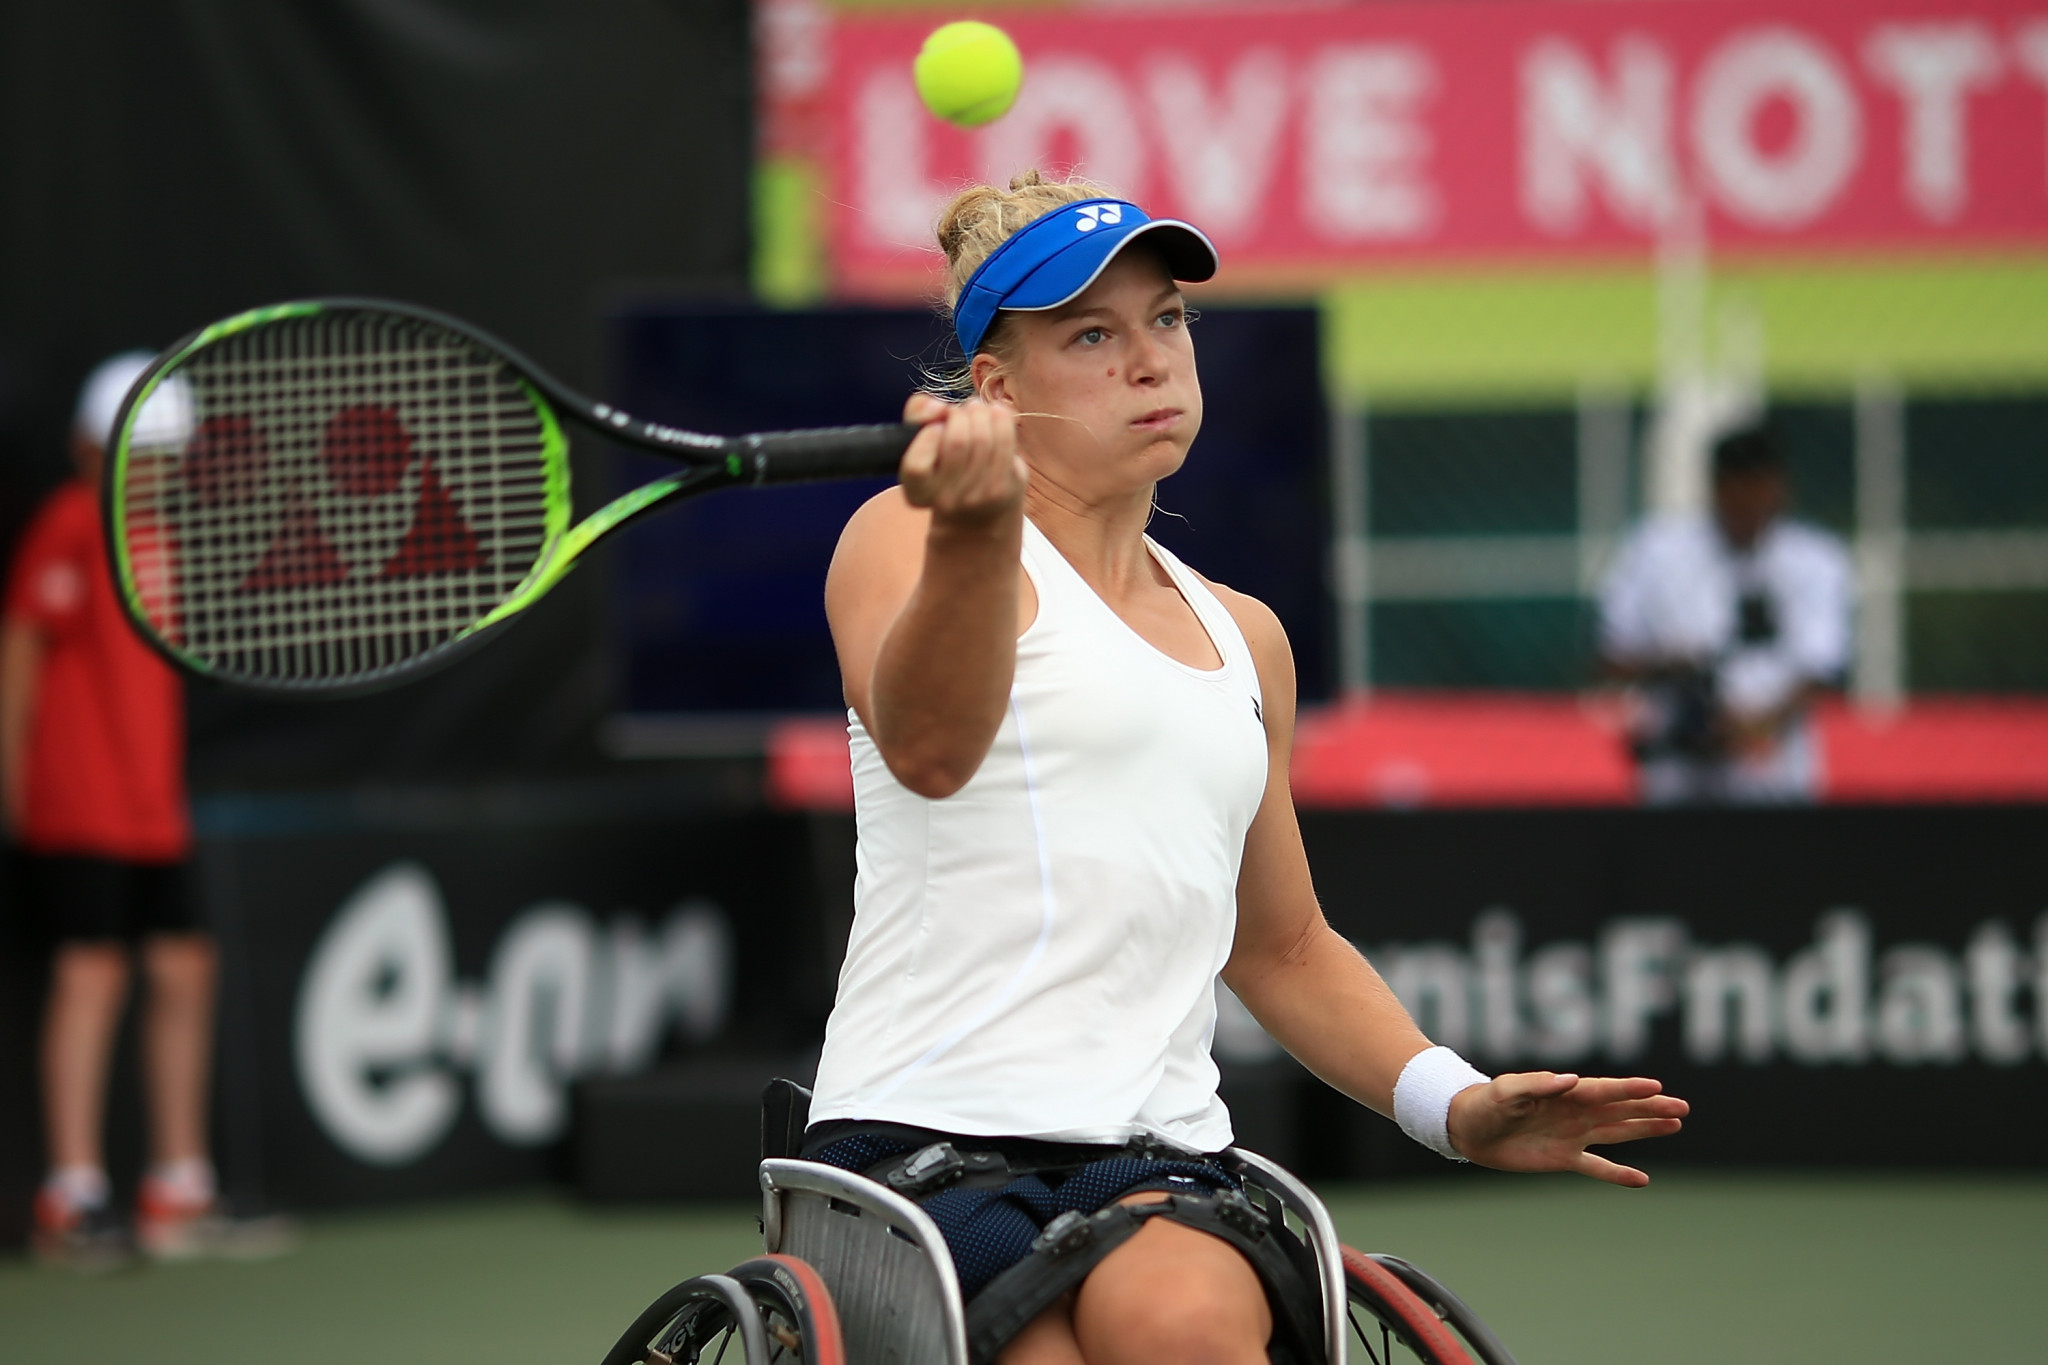 De Groot eases through at US Open Wheelchair Championships